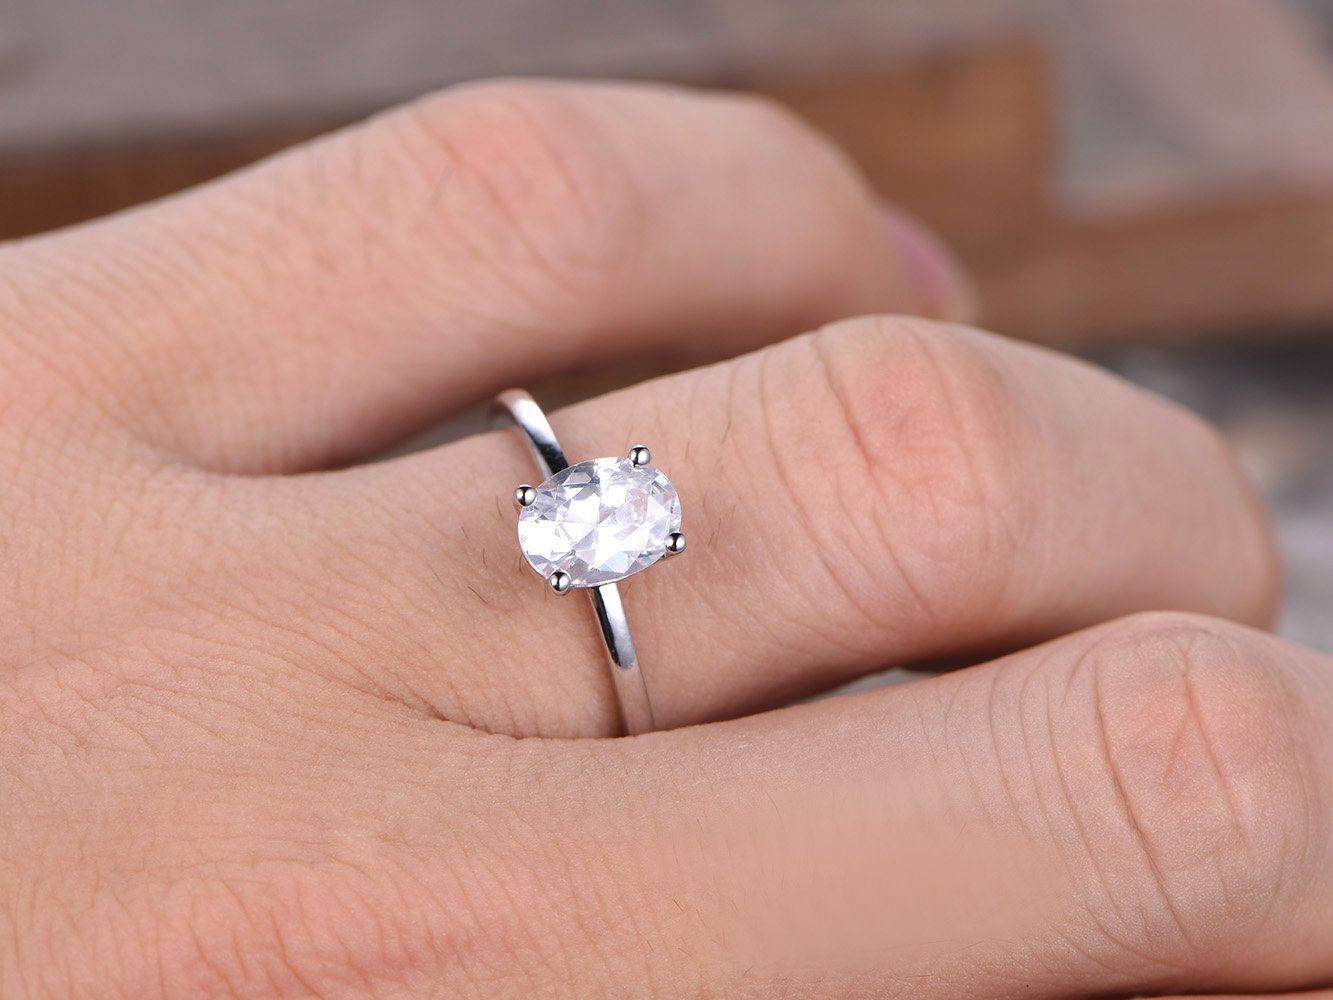 Amazon.com: 6x8mm Oval Cut Engagement Ring,925 Sterling Silver ...